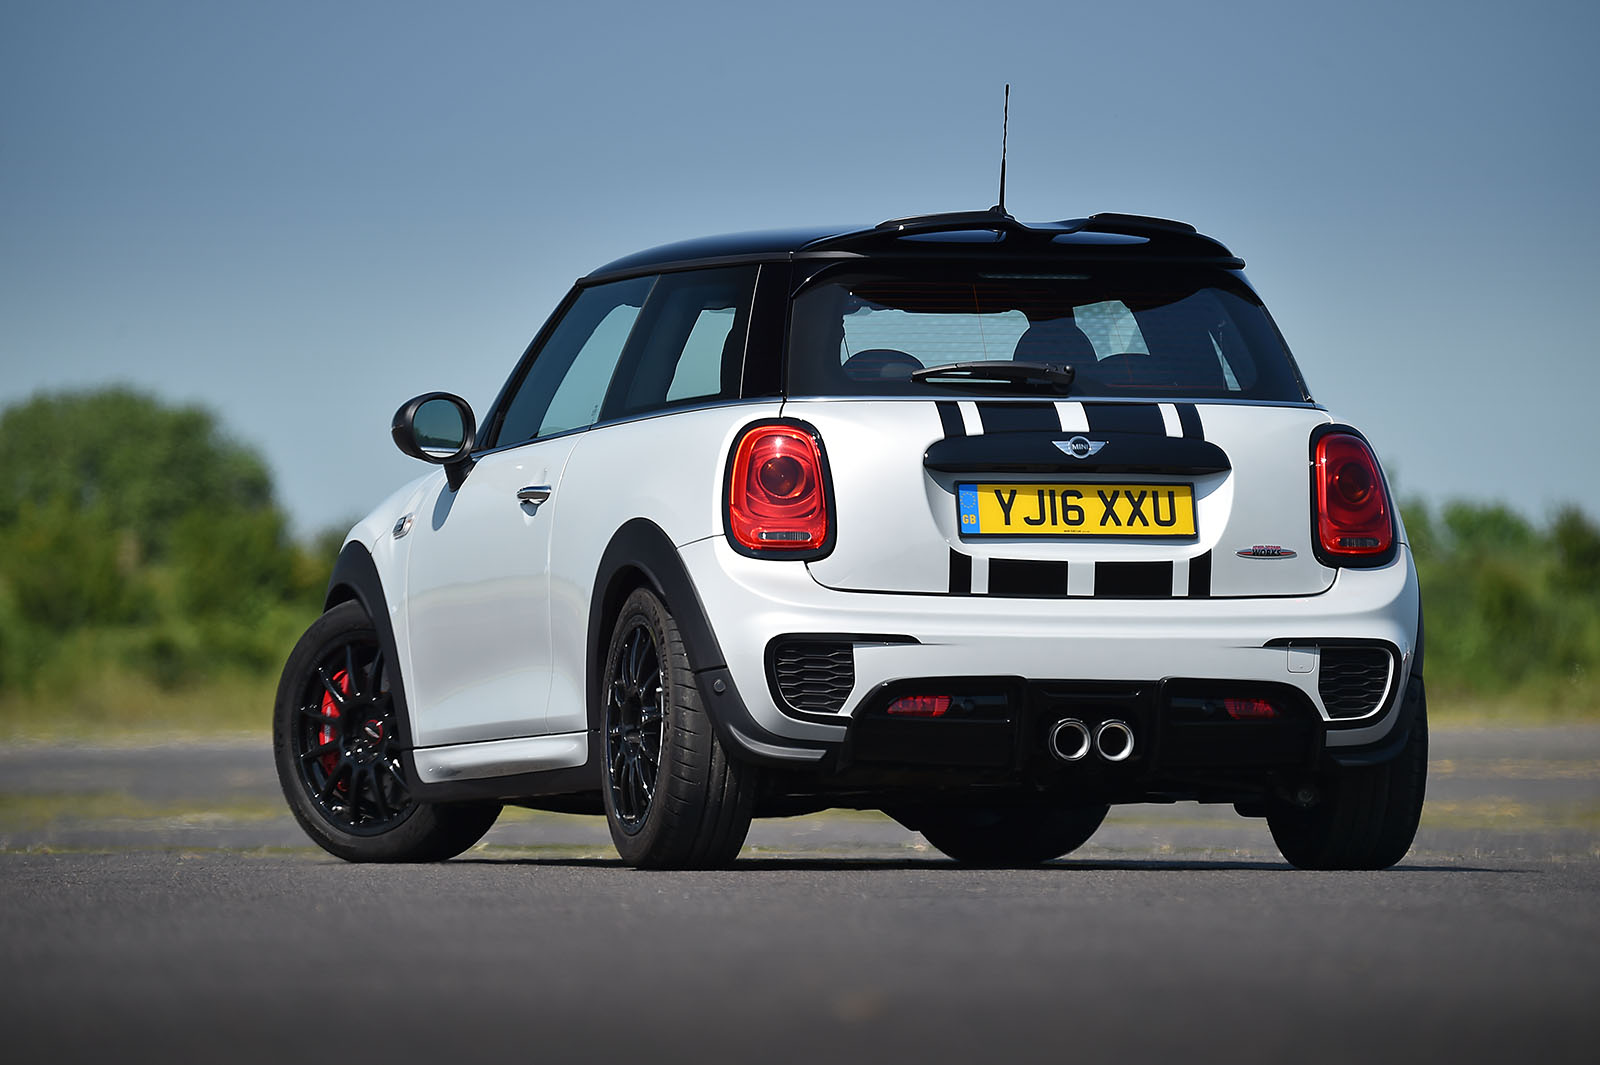 official premier uk exclusive mini cooper jcw challenge motoringfile. Black Bedroom Furniture Sets. Home Design Ideas